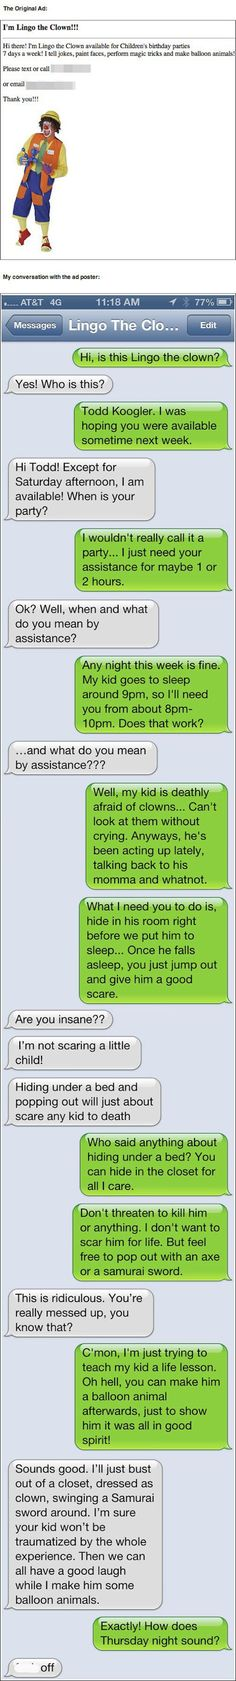 im lingo the clown text